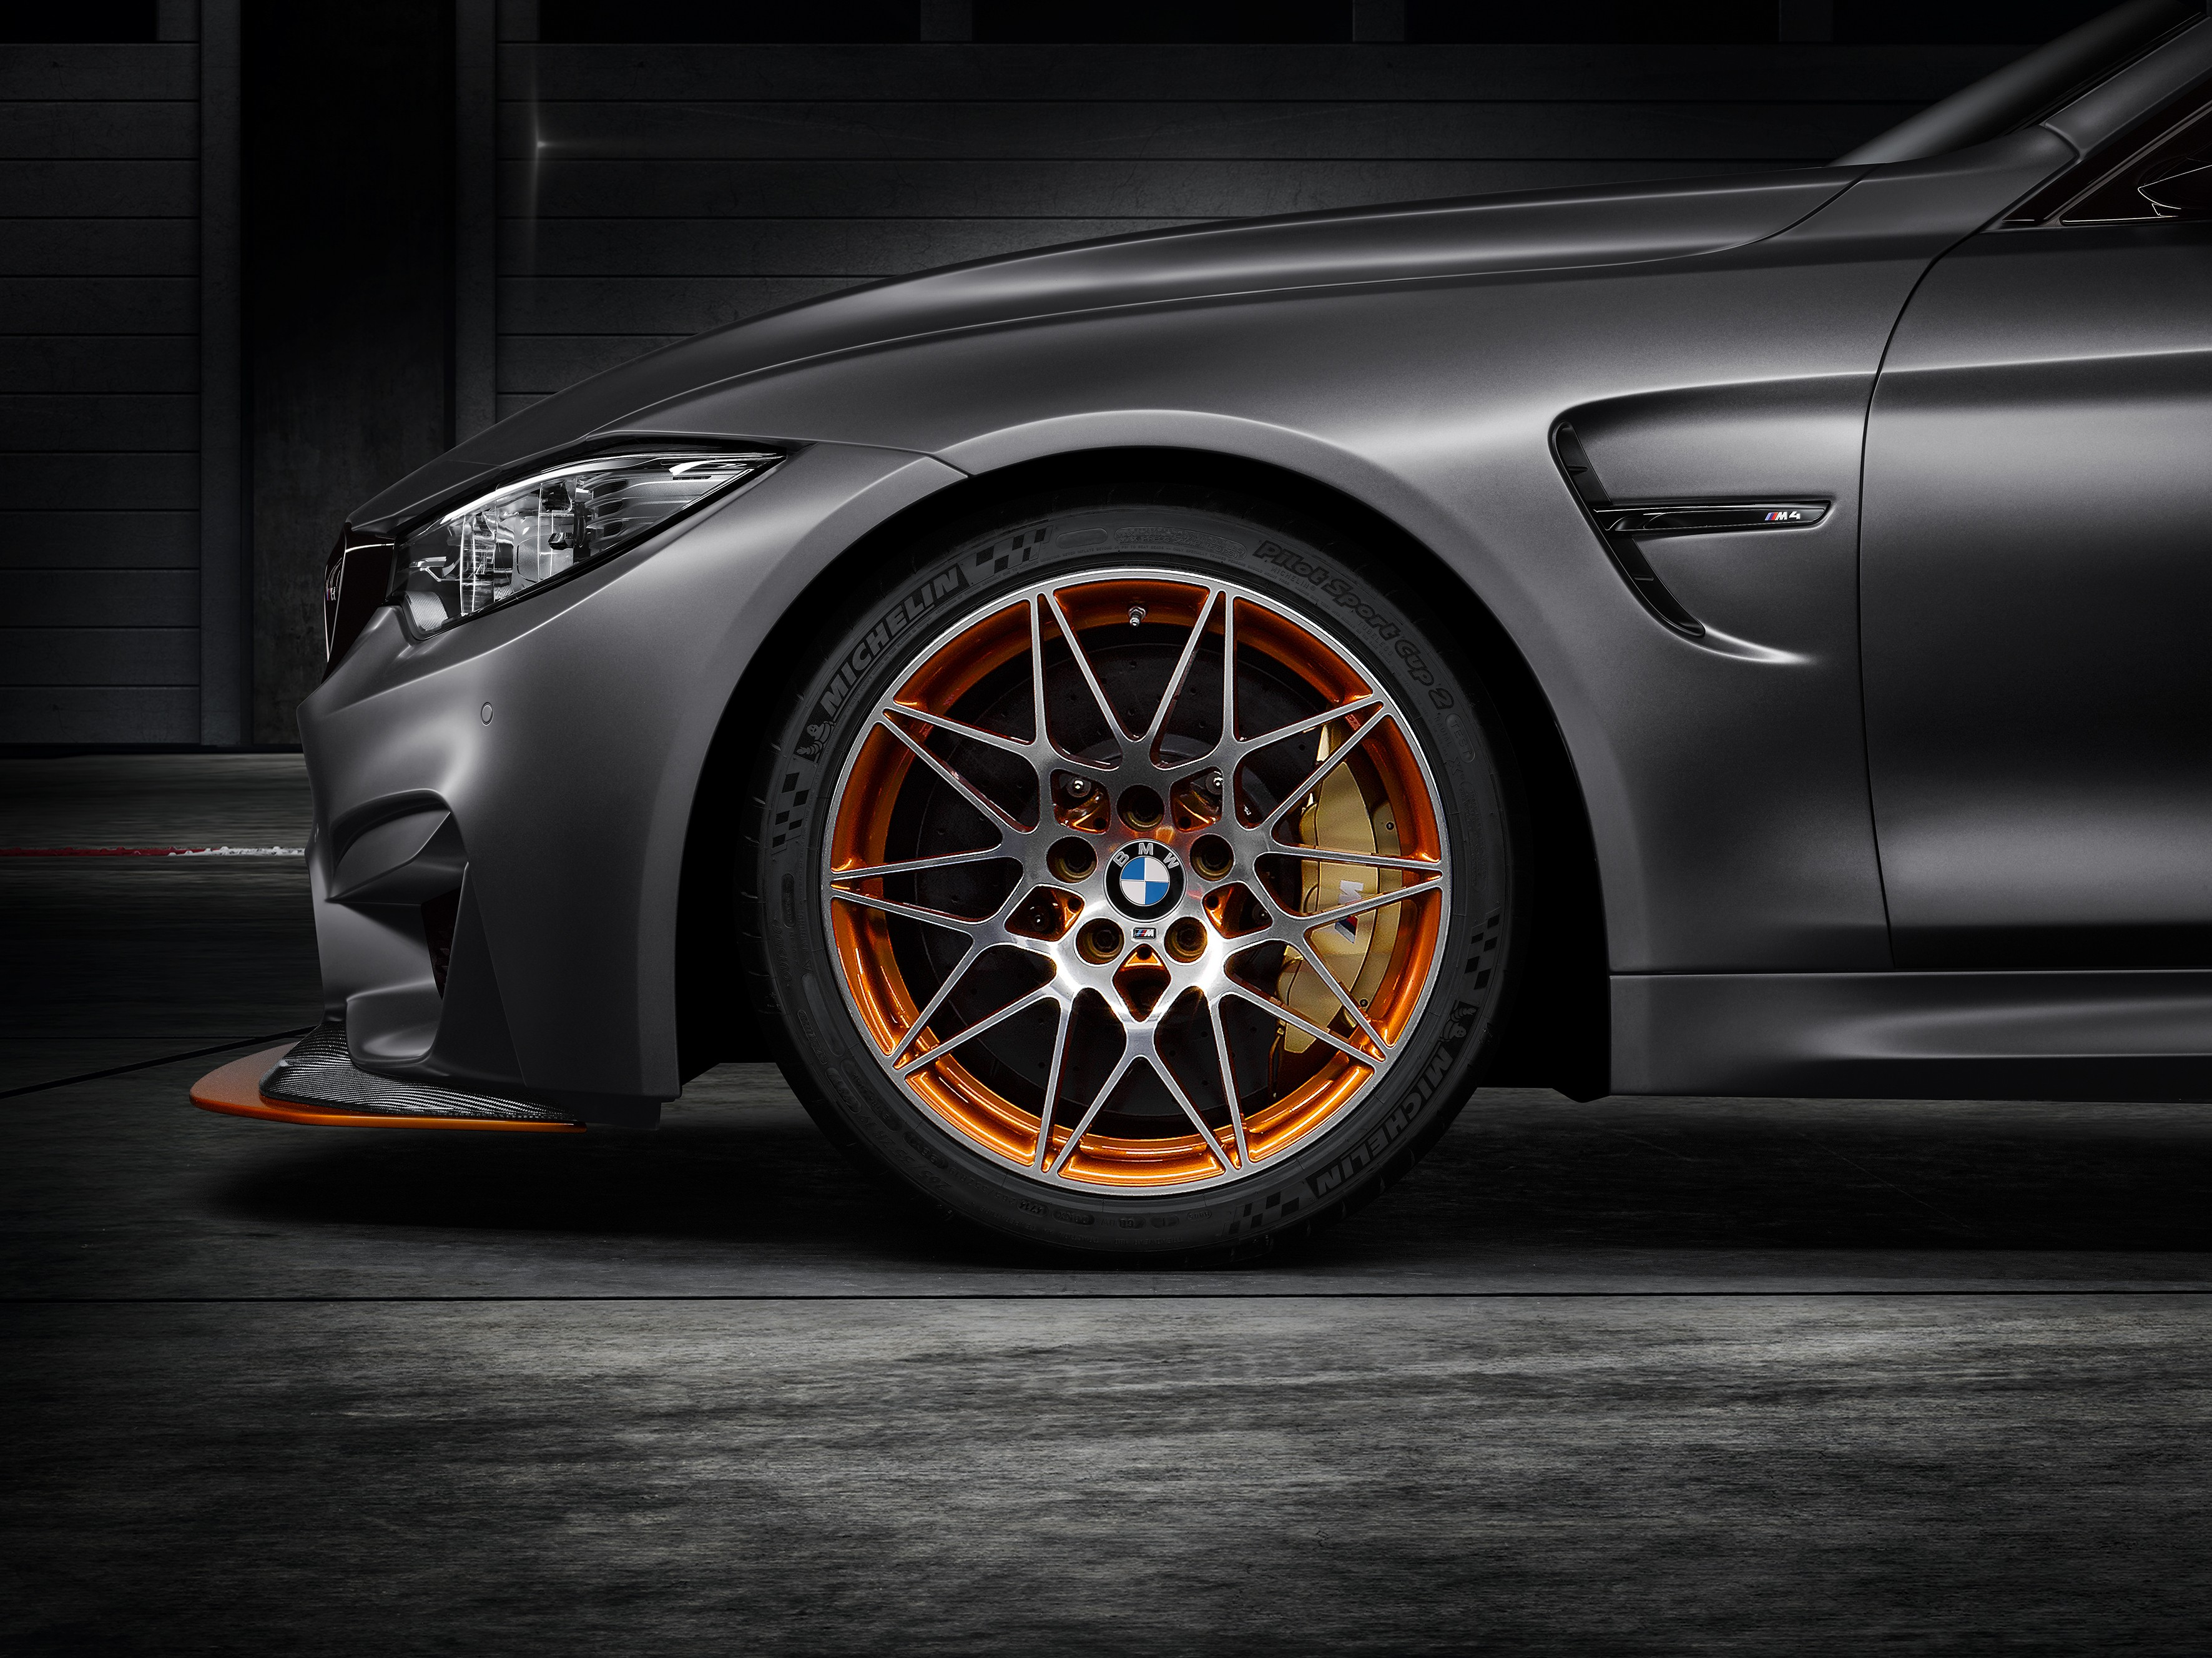 bmw-concept-m4-gts-makes-world-debut-at-pebble-beach-with-oled-lighting-photo-gallery_11